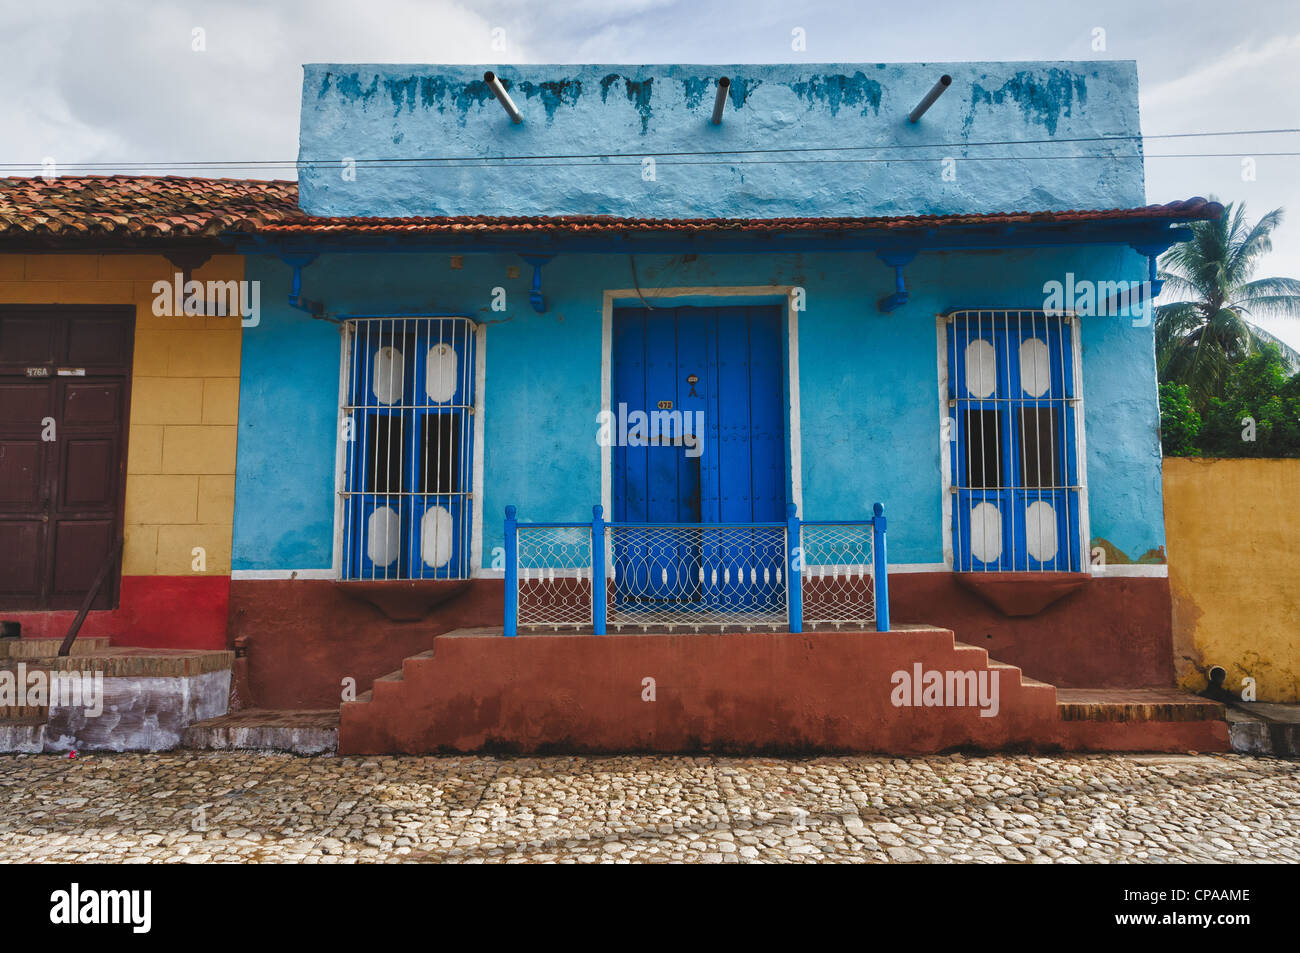 Trinidad, Cuba. View of Trinidad street, one of UNESCOs World Heritage sites since 1988. - Stock Image